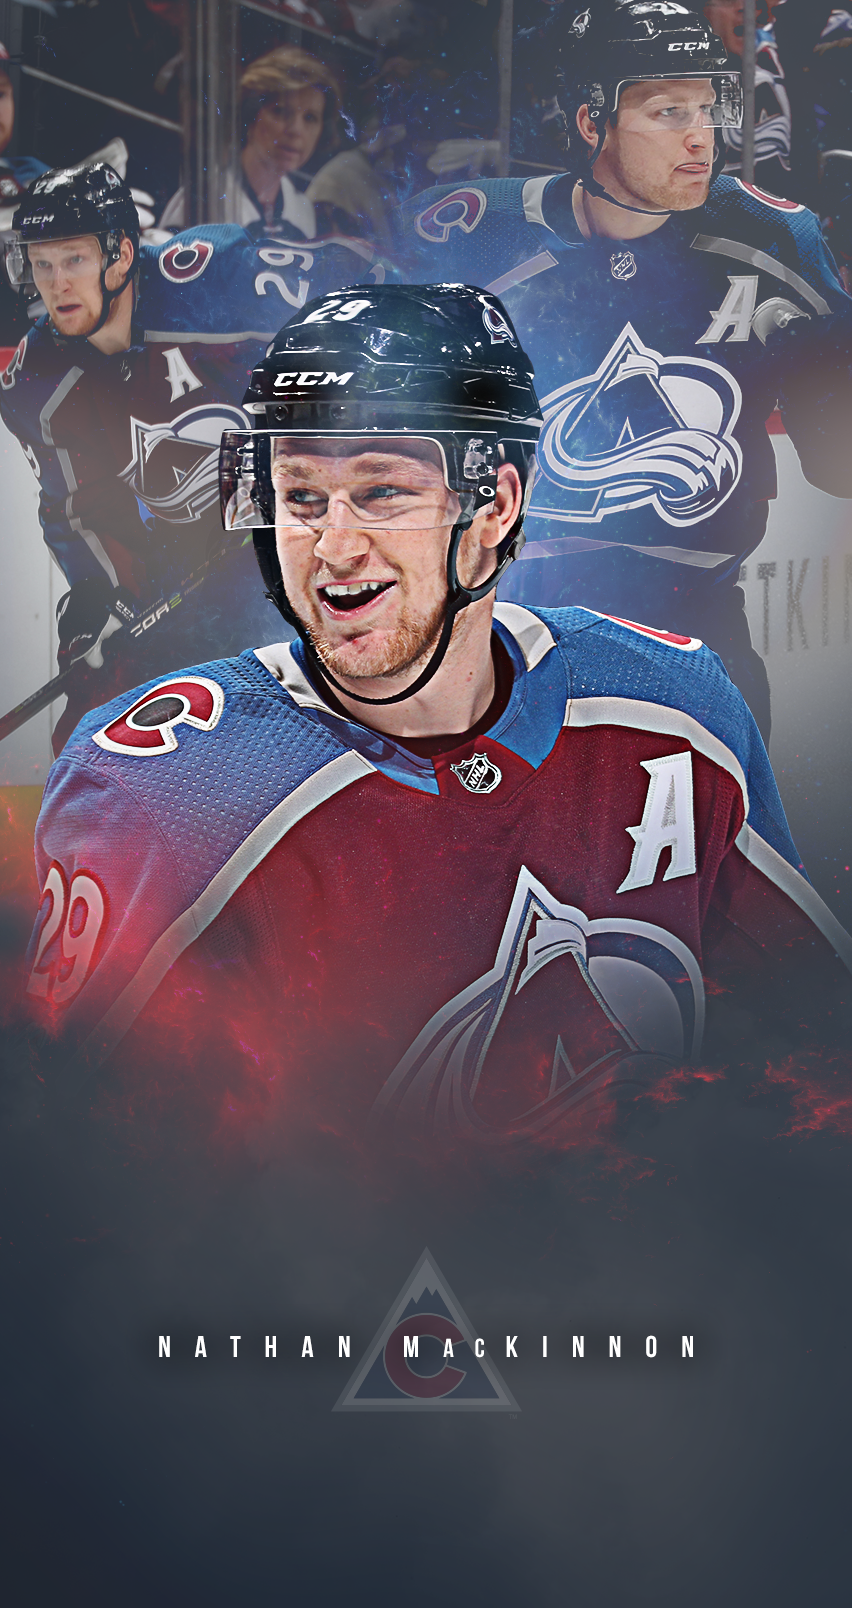 852x1608 - Colorado Avalanche Wallpapers 12